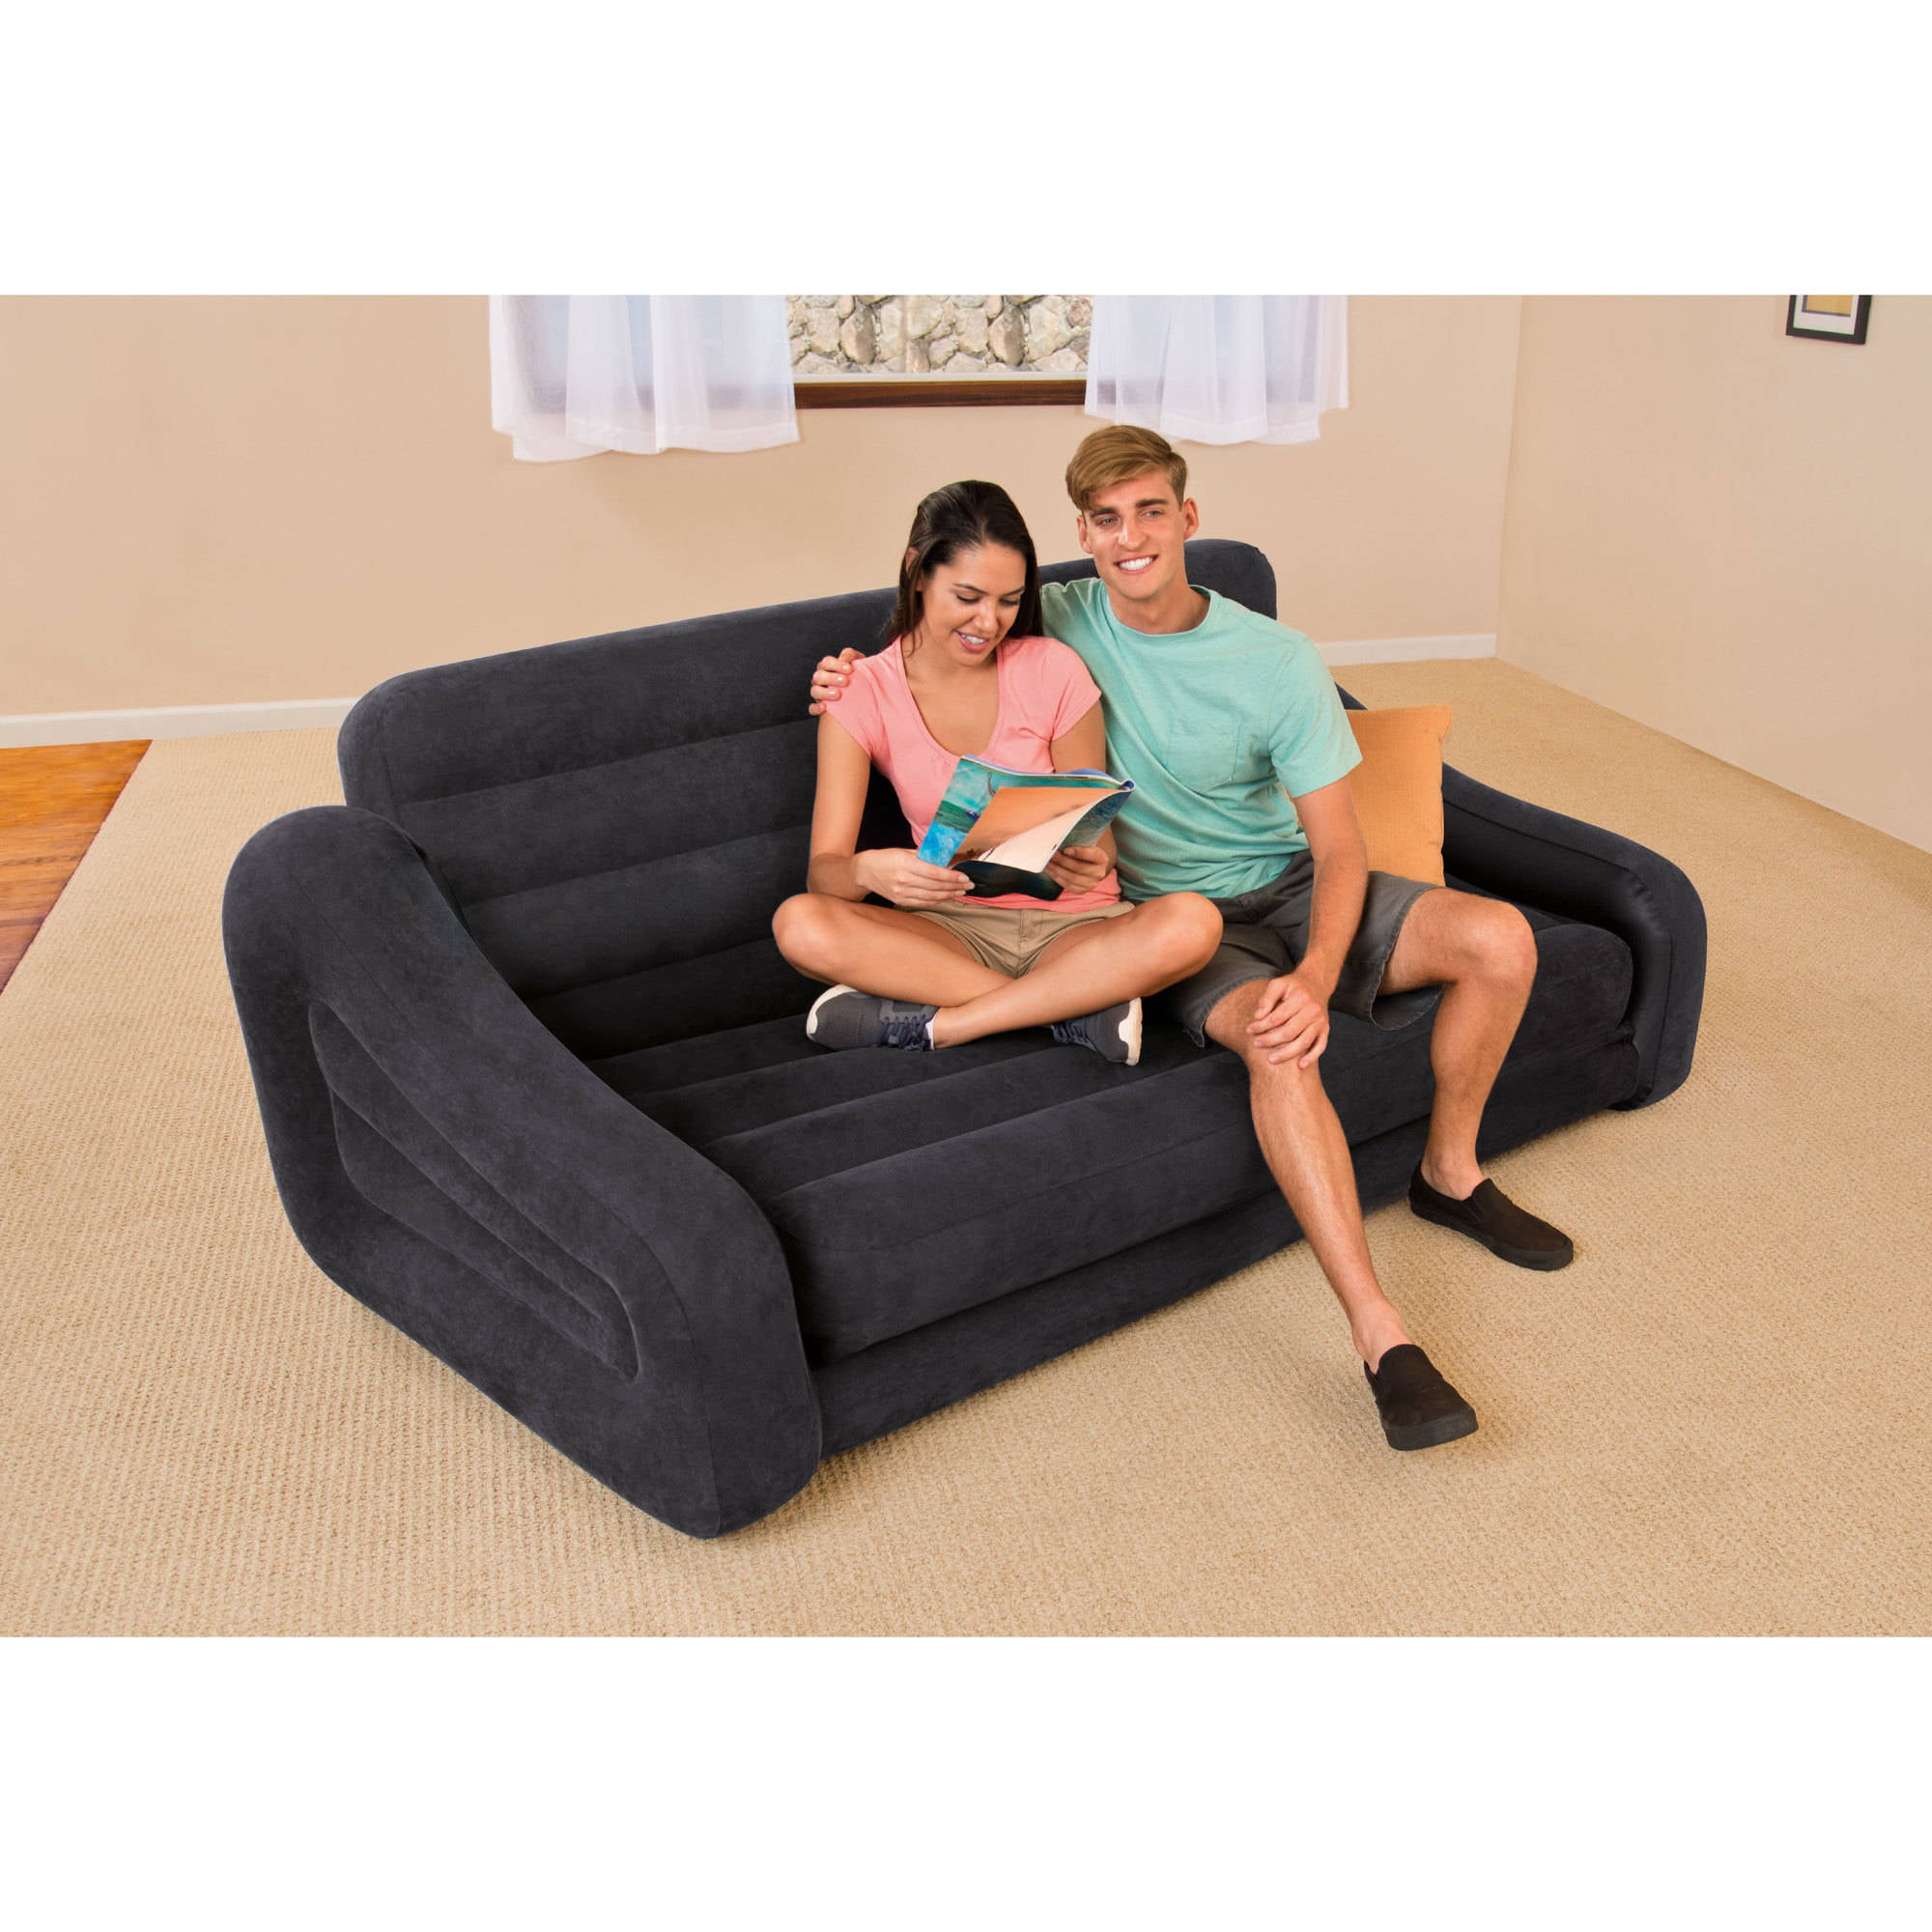 Intex Queen Inflatable Pull Out Sofa Bed, 1 Each   Walmart.com